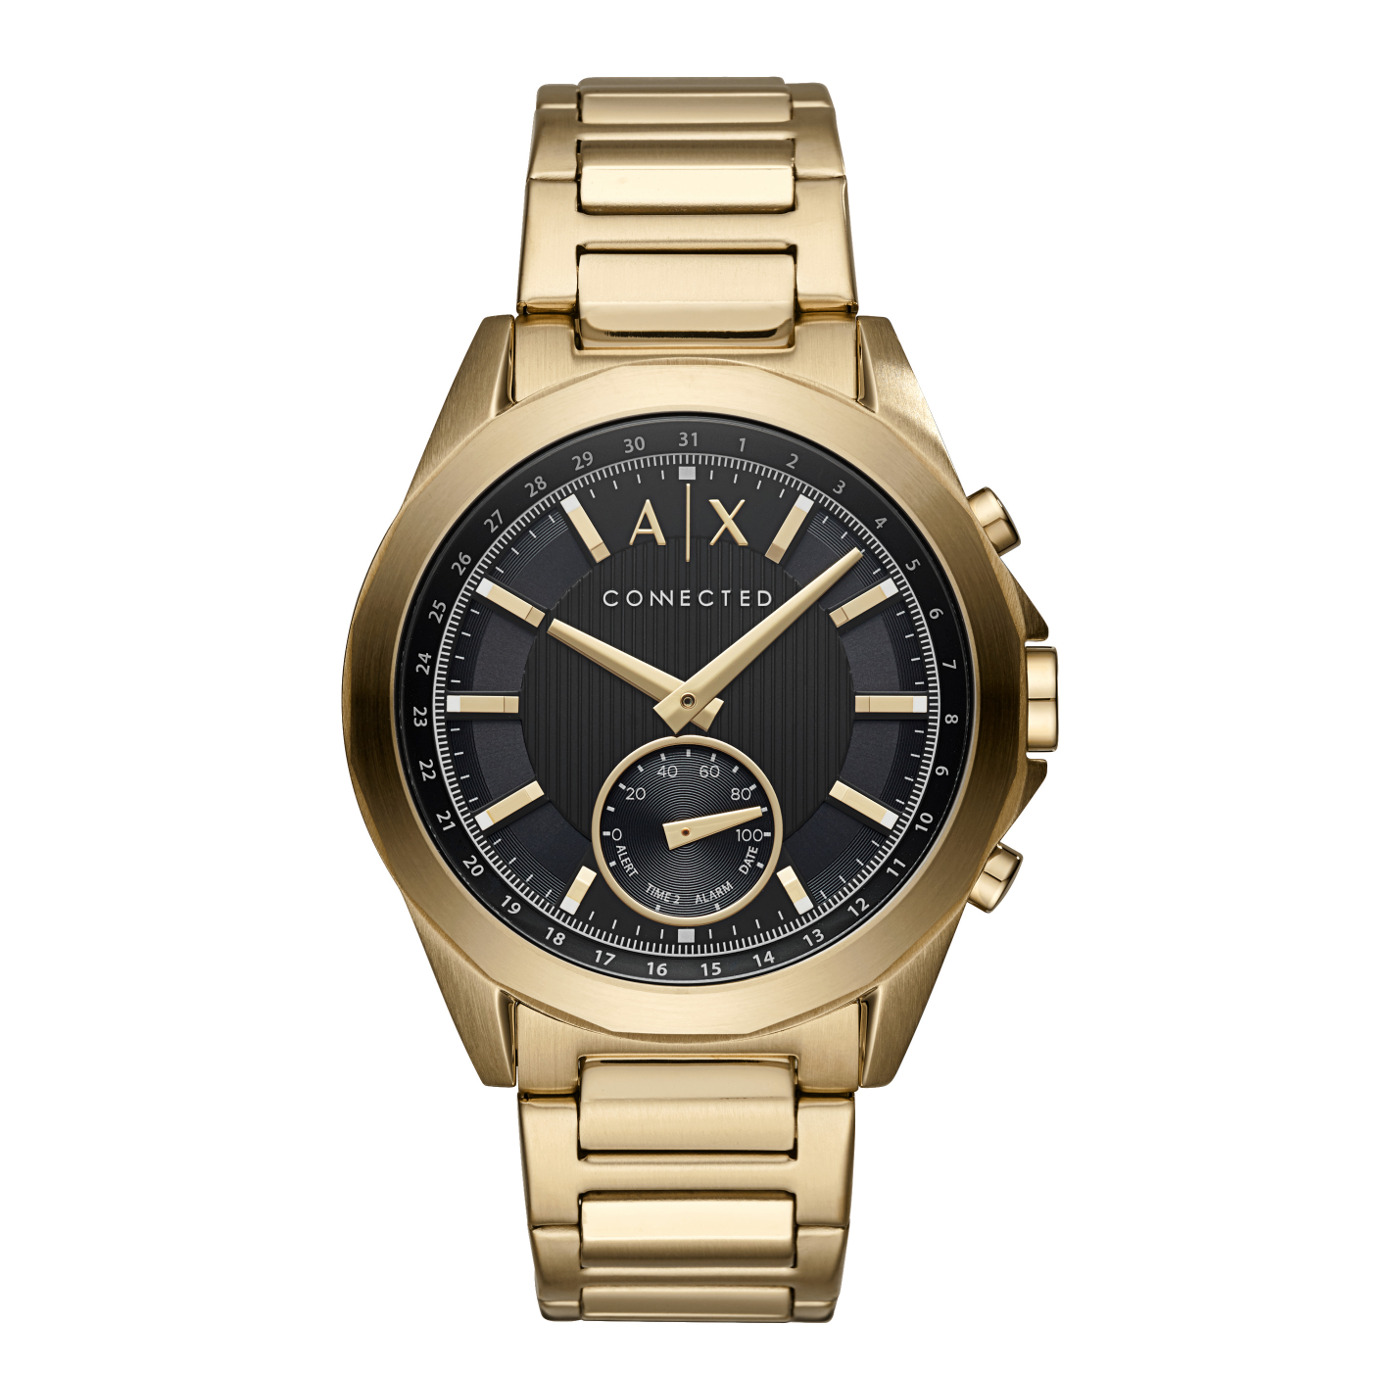 Bilde av Armani Exchange Connected watch AXT1008